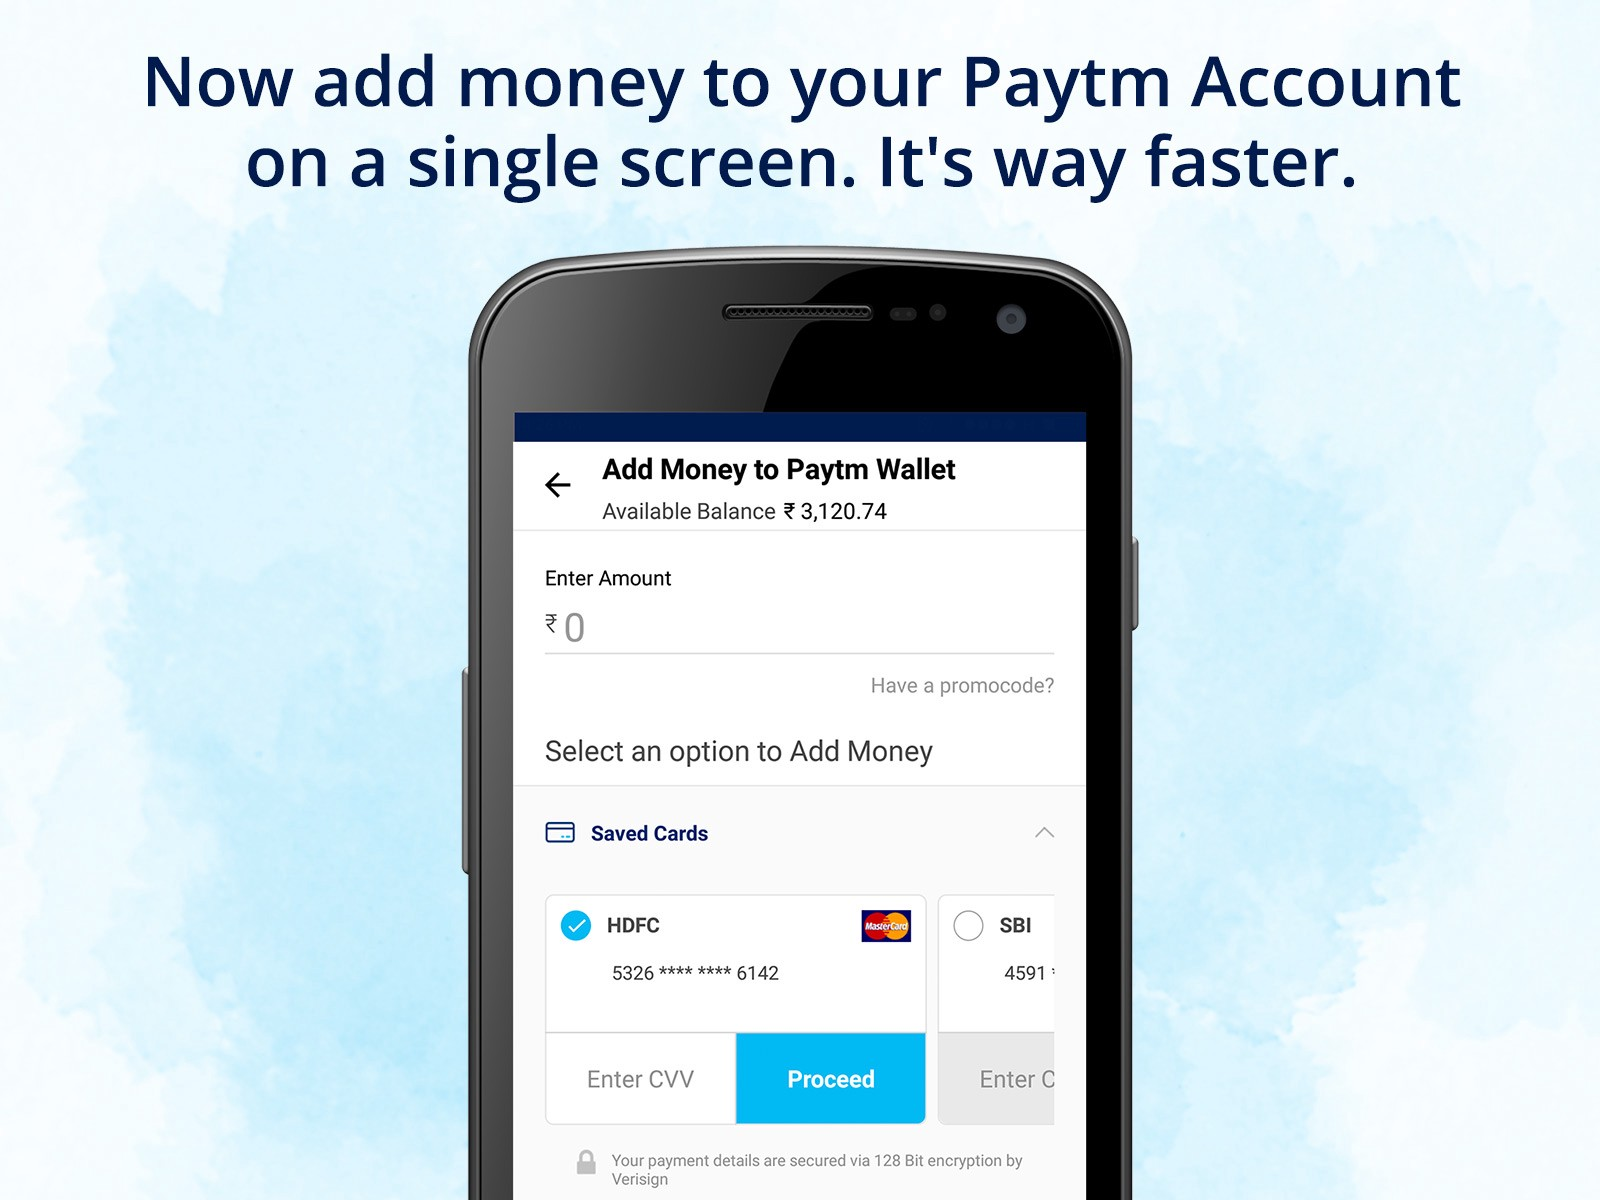 The latest Paytm app update is out! Here is what's new